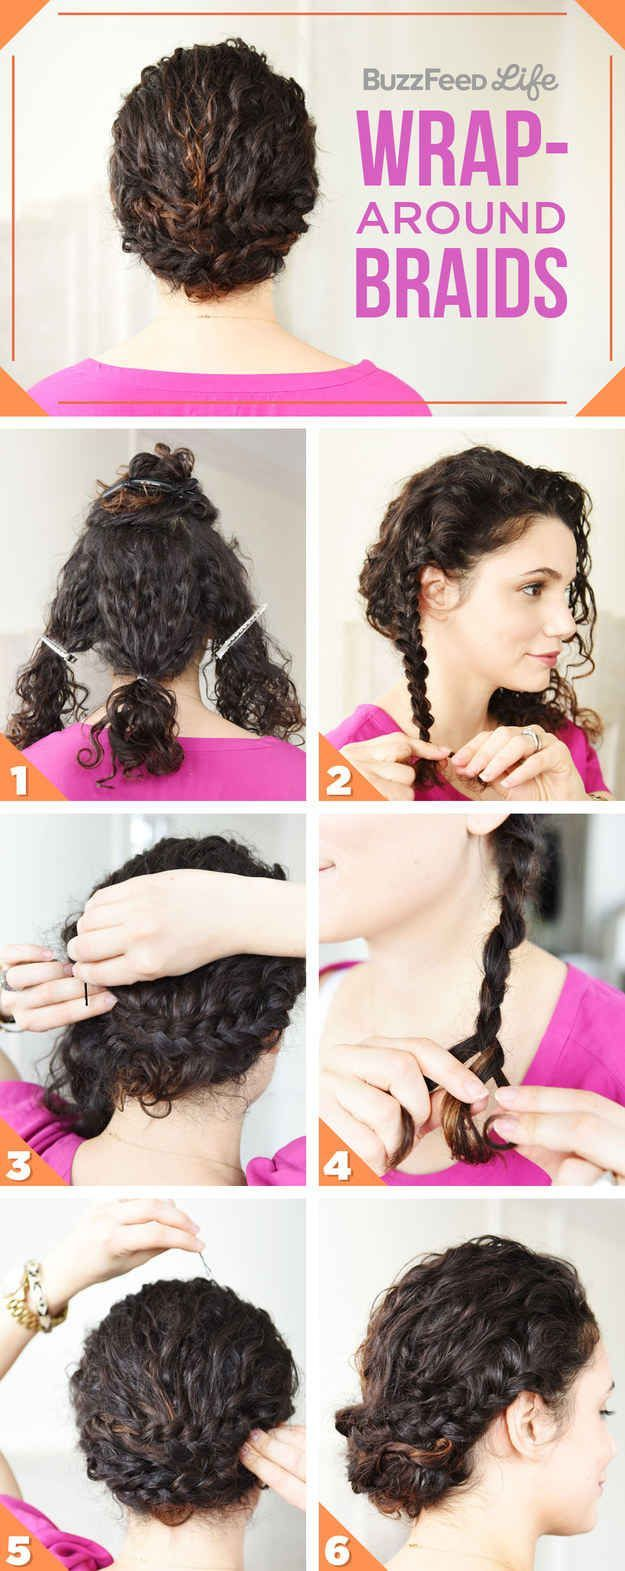 10 Most Beautiful High Bun Hairstyles For Those Lazy Mornings!